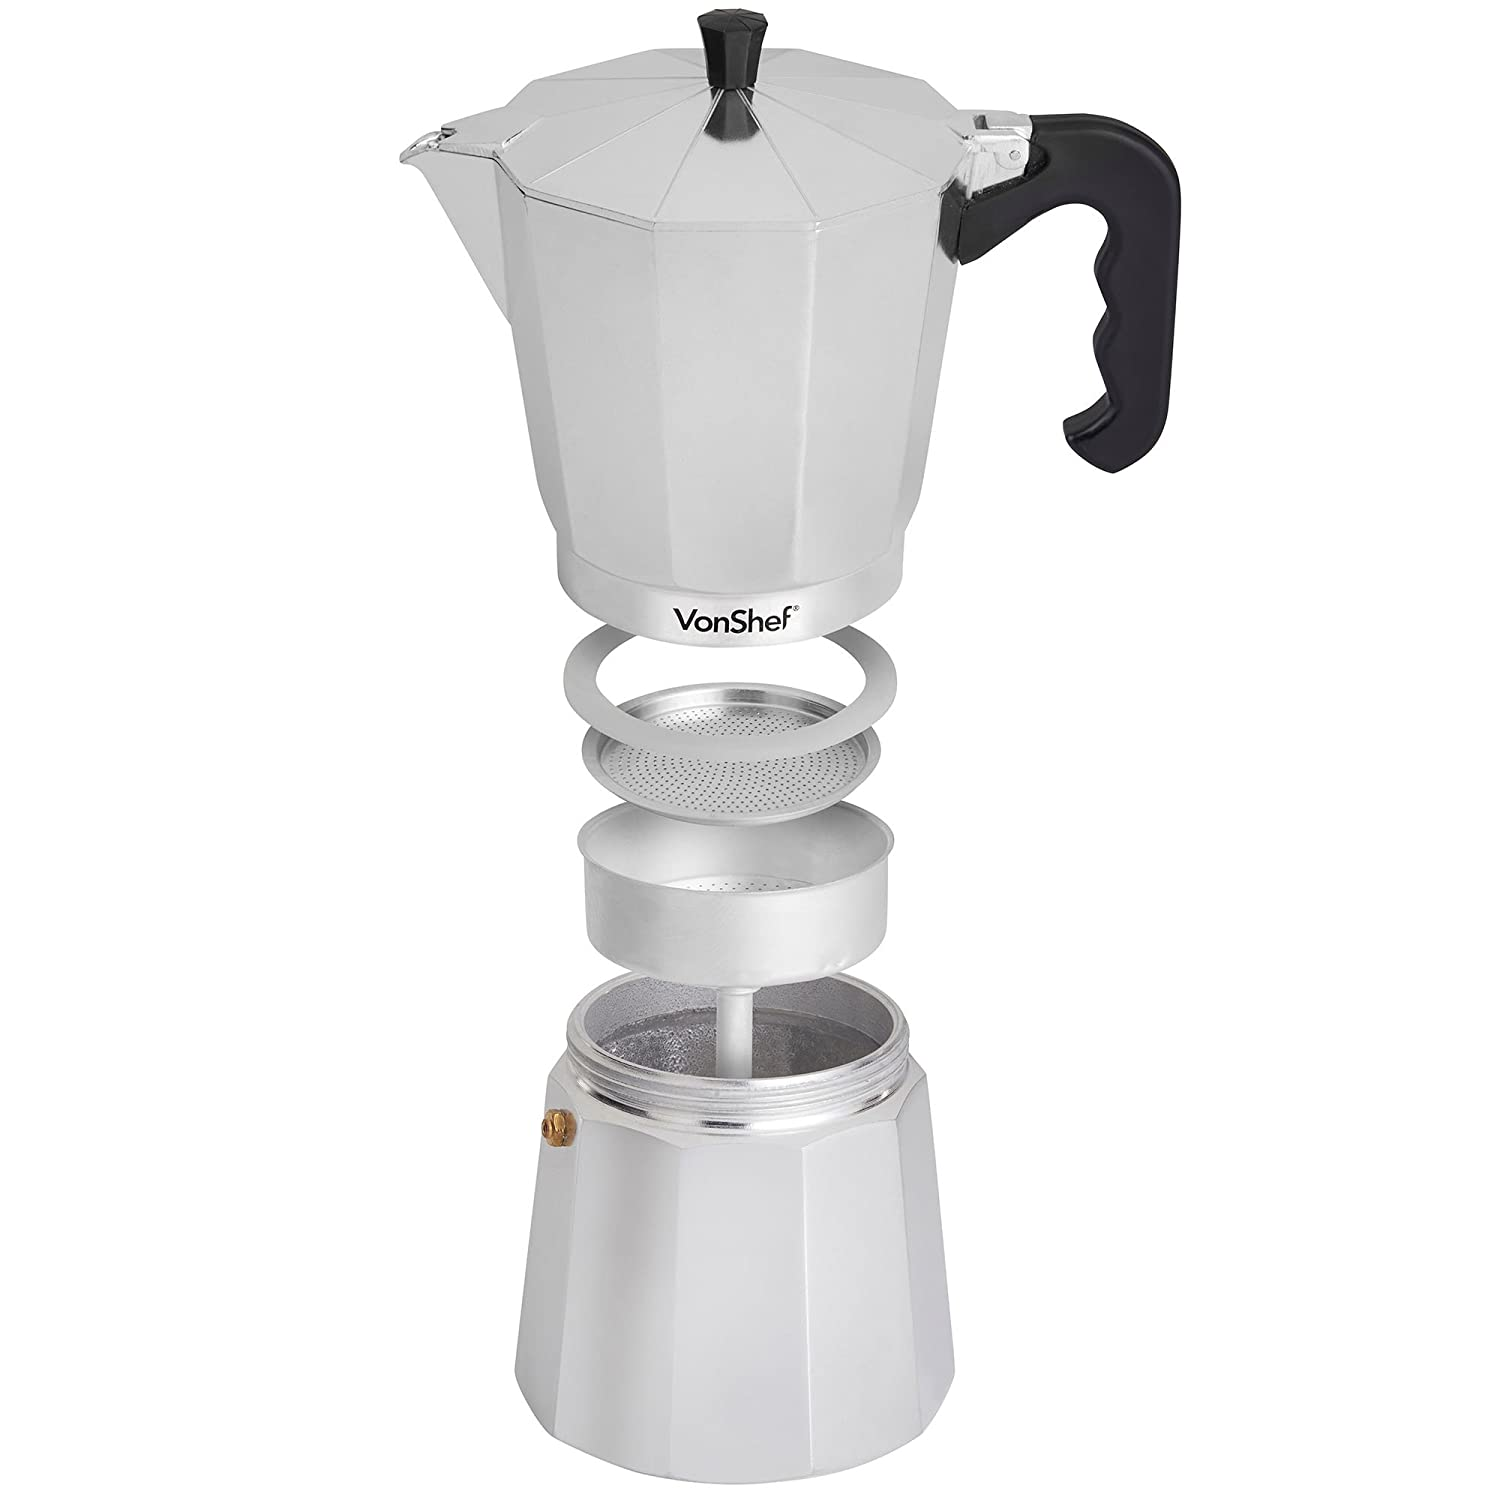 Amazoncom Vonshef 12 Cup Chrome Aluminium Espresso Maker Kitchen &